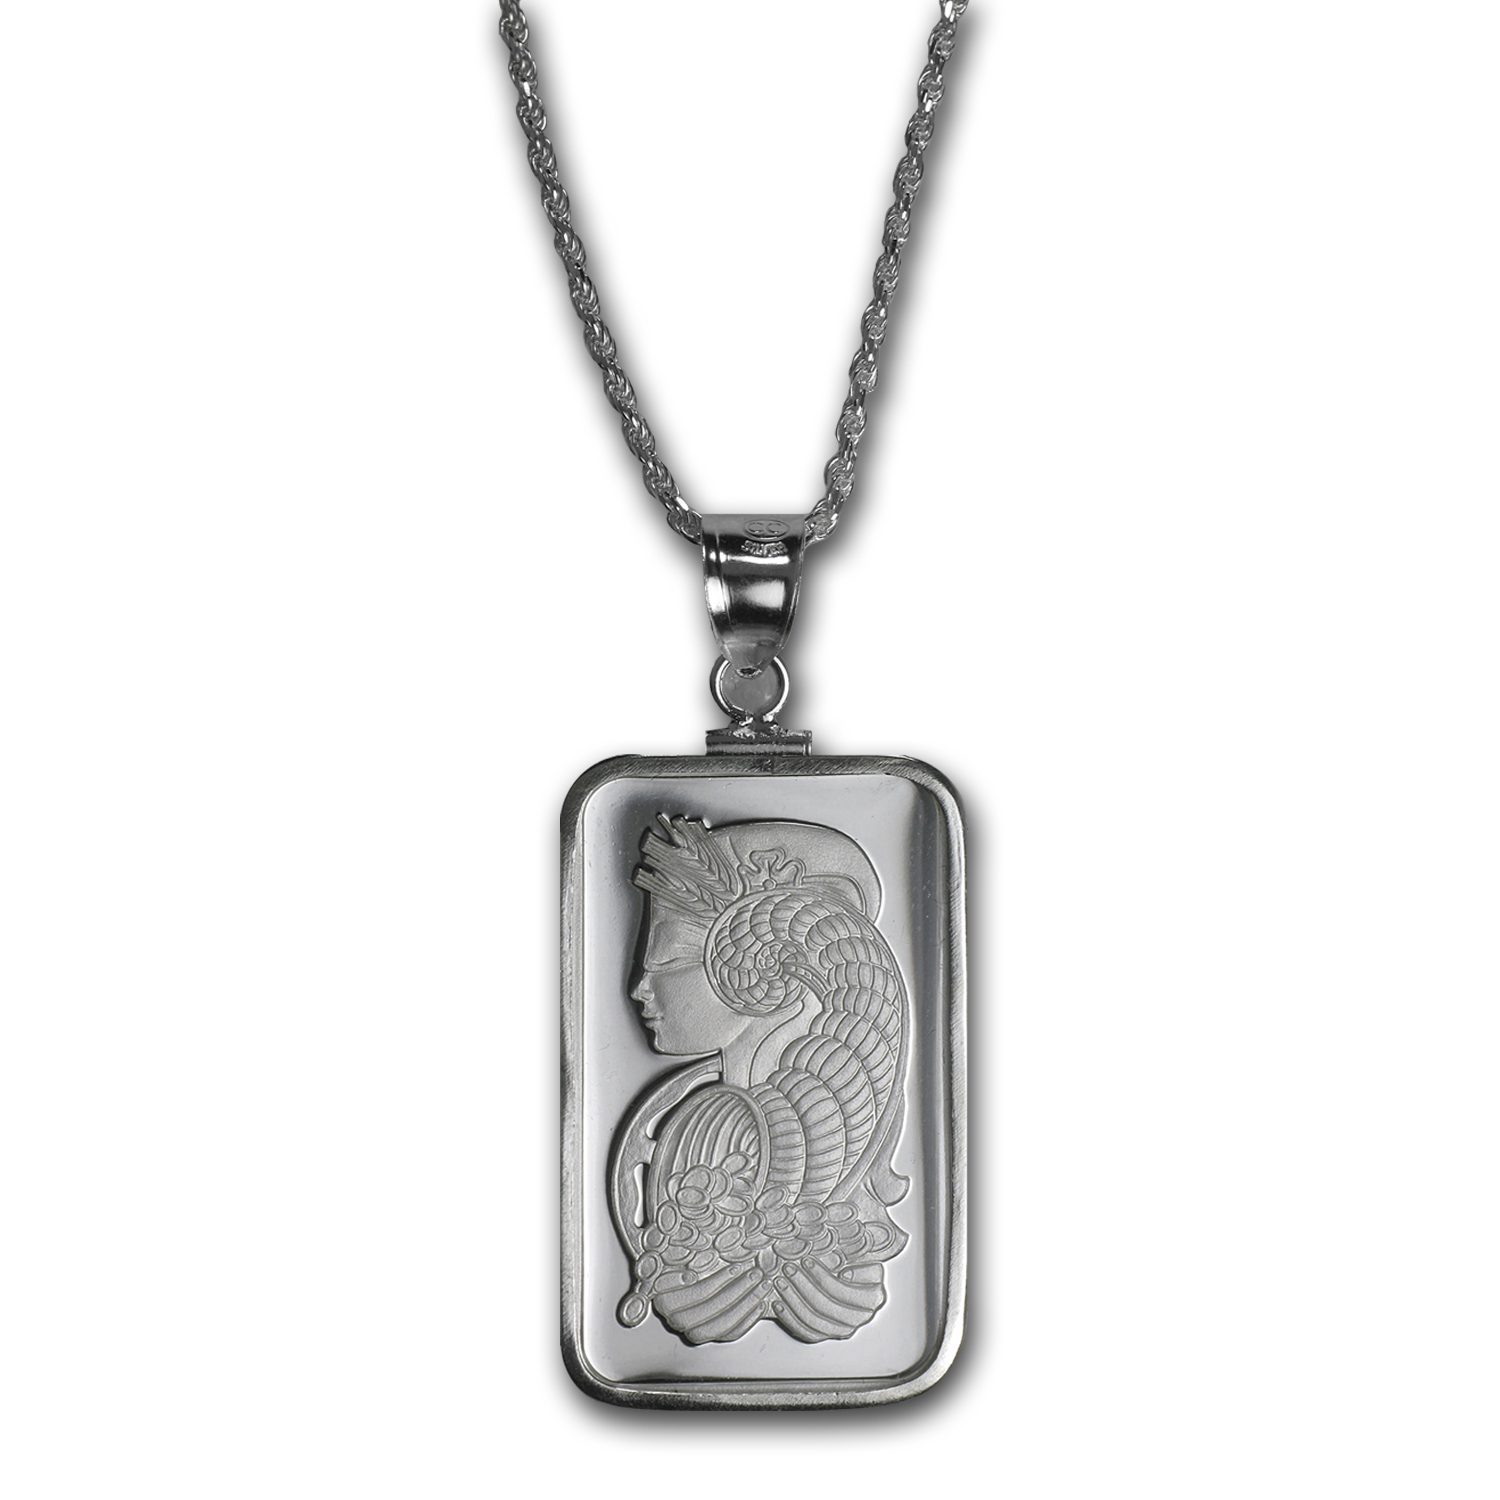 10 gram Silver - PAMP Suisse Fortuna Pendant (w/Chain)